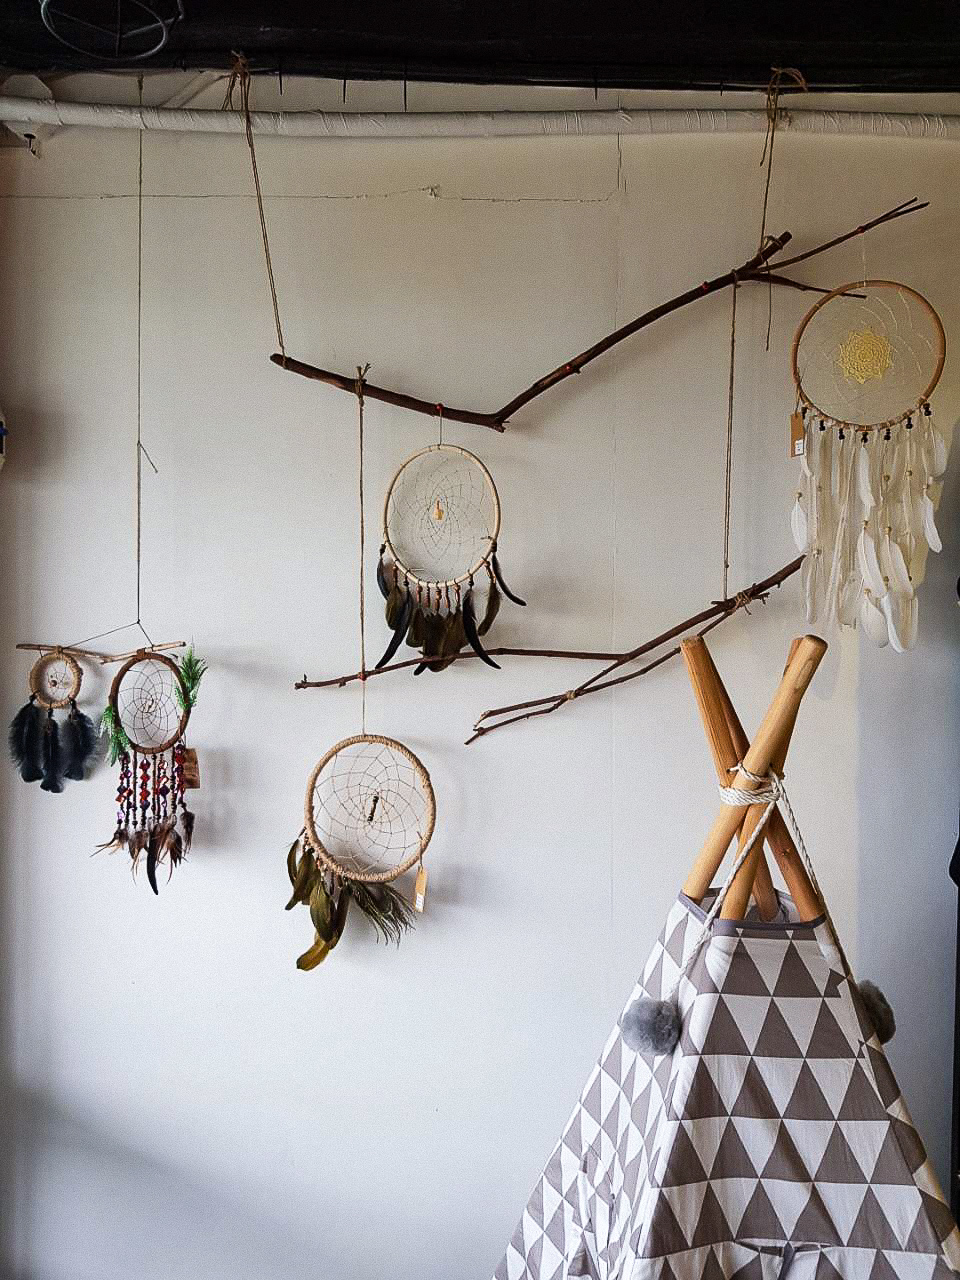 Kamusta? - When you open the door, you'll be greeted by hand-painted signs, a row of dreamcatchers dangling over a grey teepee (similar to what we have at home), and a mix of paper airplanes, crafty mobiles, and lights hanging from the ceiling.